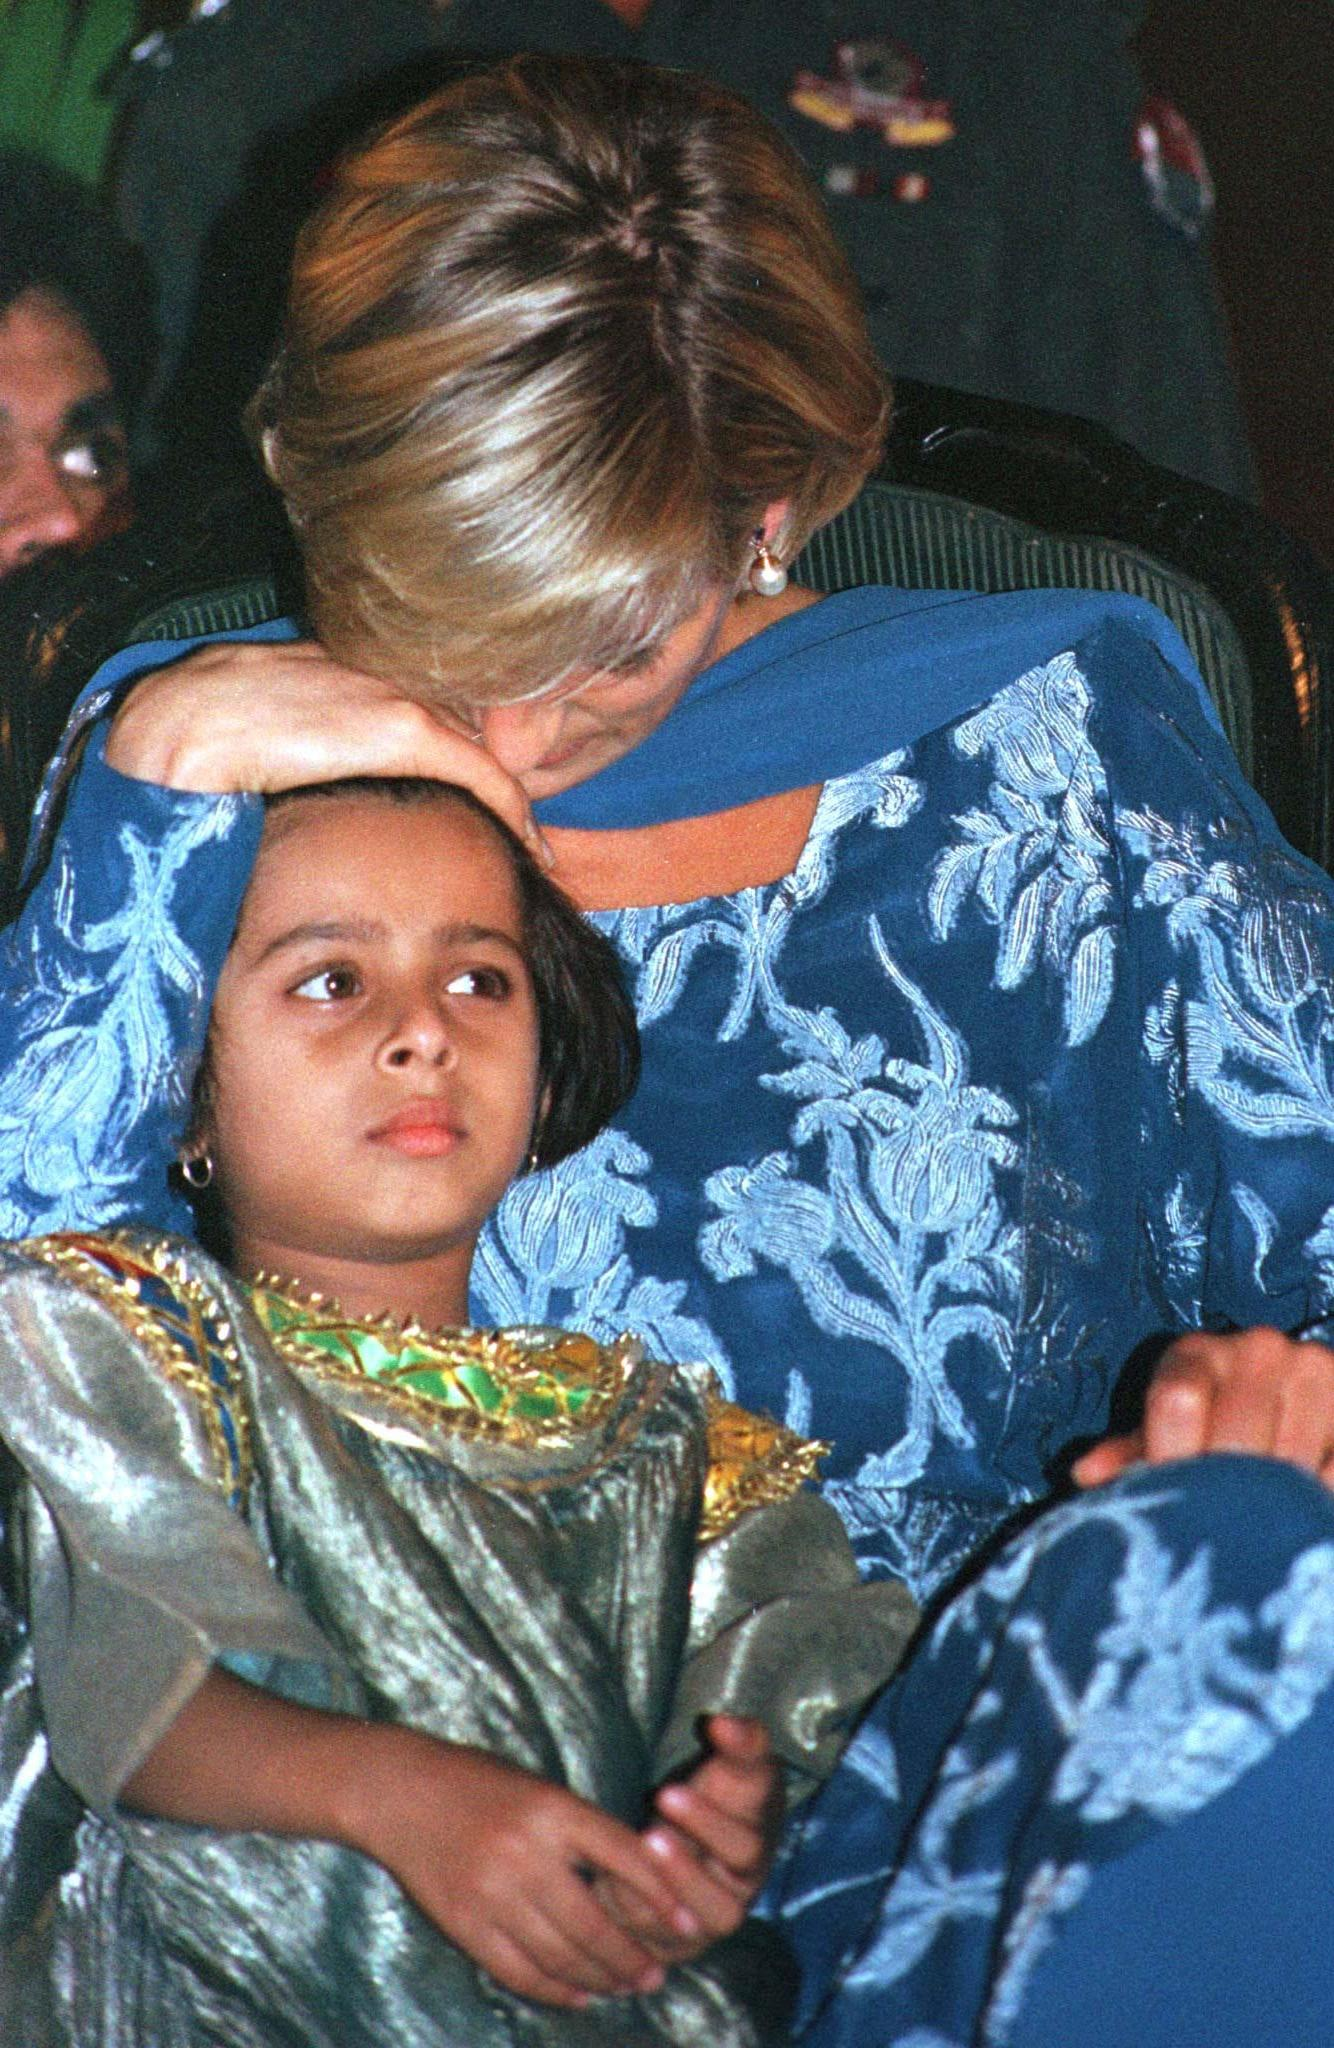 Princess Diana comforts 5-year-old Iqra Asif, sister of a cancer patient Khurram Zia, 14, at a hospital in Lahore on May 23, 1997. Photo by Muzammil Pasha/Reuters